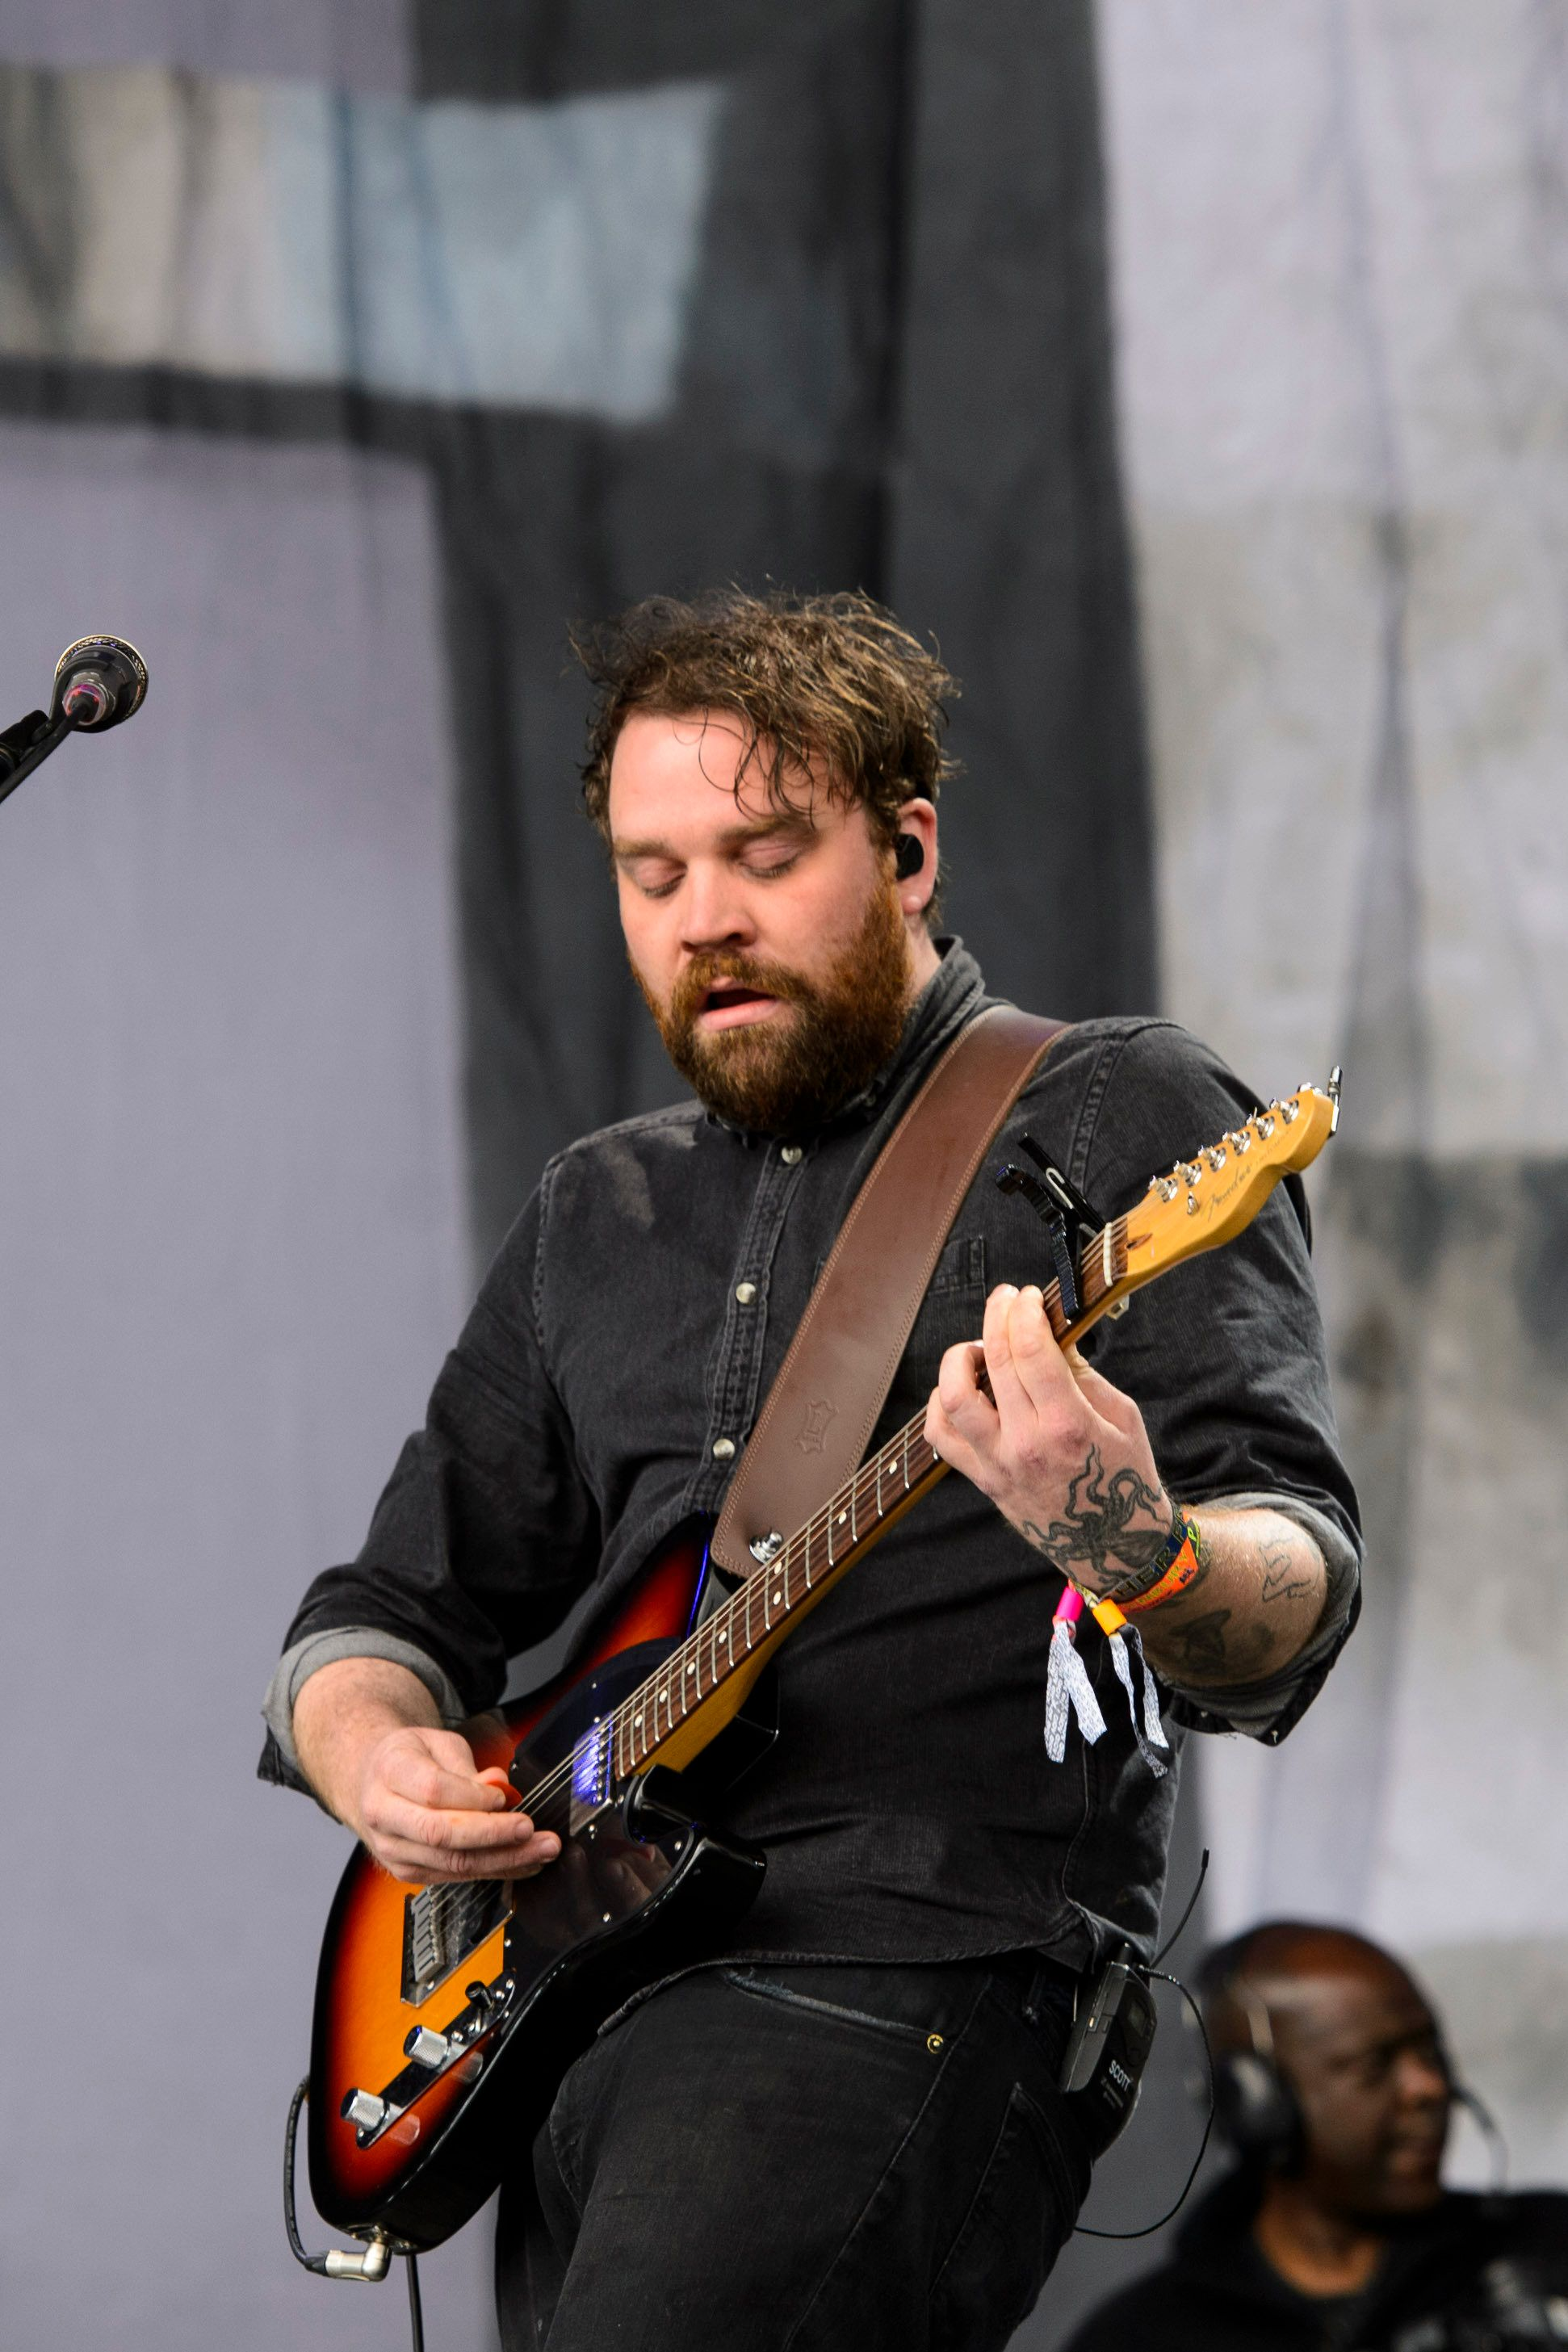 Body Identified As Frightened Rabbit Singer Scott Hutchison, Police Confirm